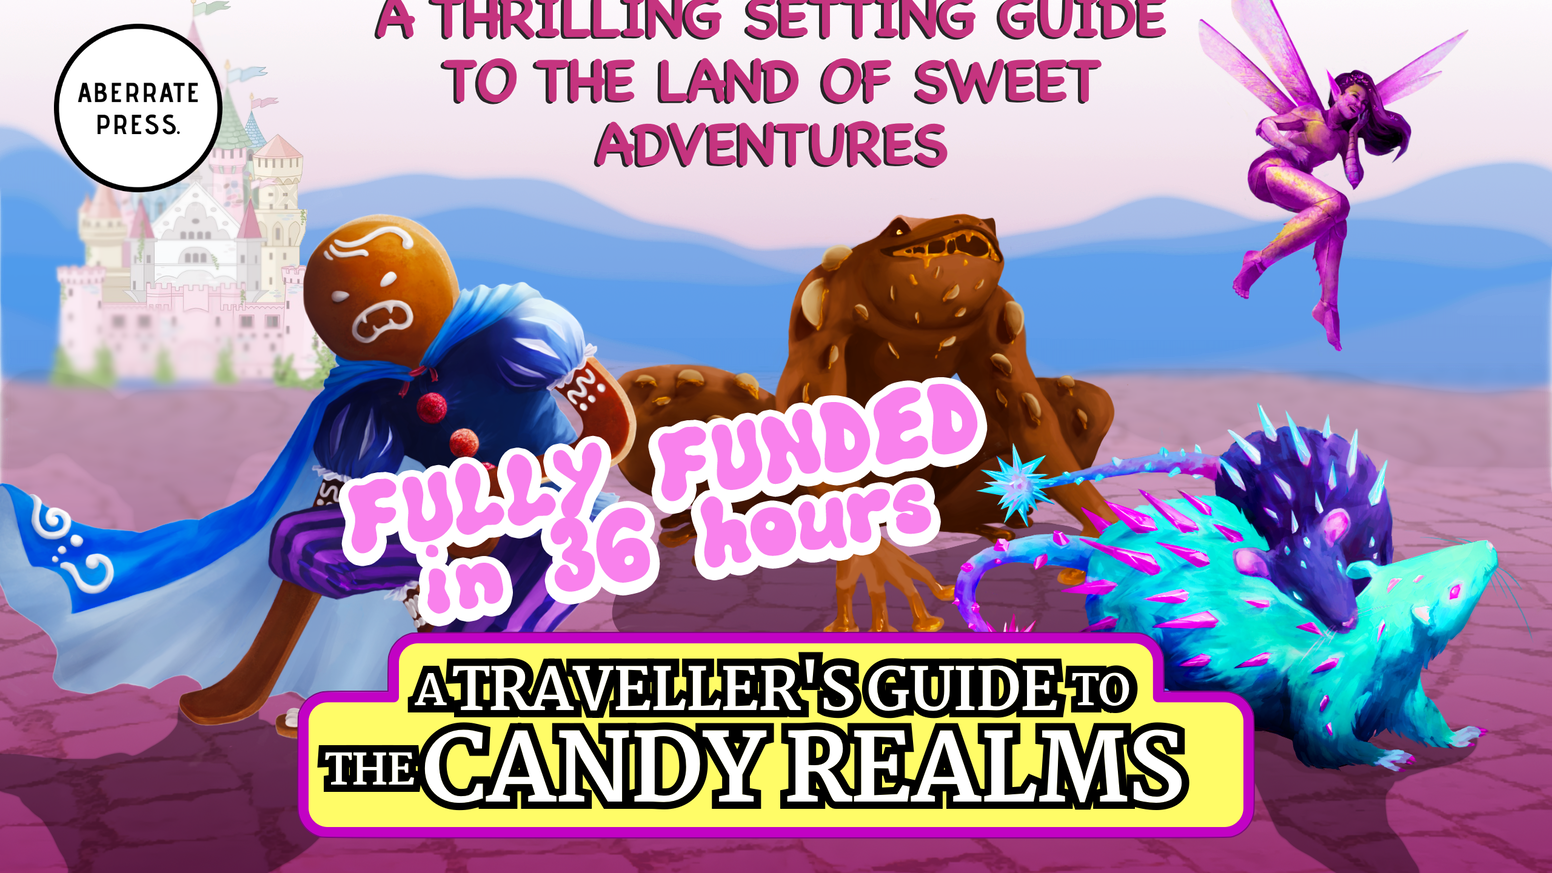 A Thrilling setting guide to the mystical land of sweet adventures. Join us on an adventure into the Candy Realms